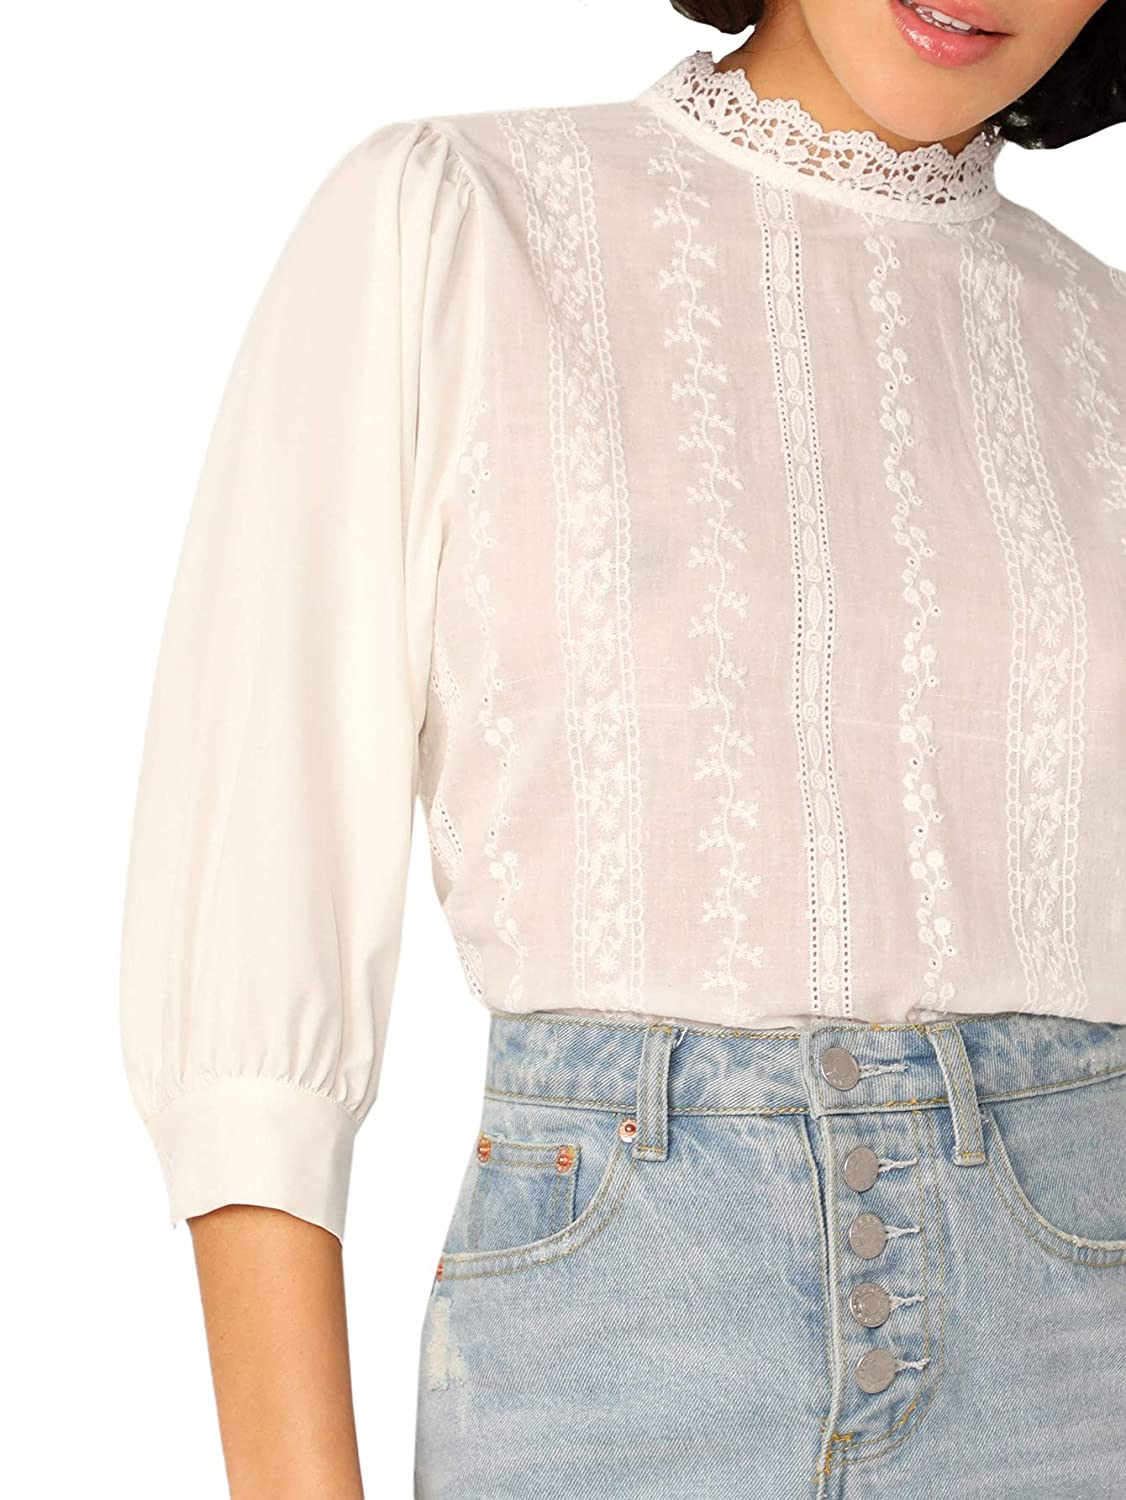 Edwardian Blouses | White & Black Lace Blouses & Sweaters Verdusa Womens Lace Trim Mock Neck Embroidery Eyelet Blouse Top $18.99 AT vintagedancer.com